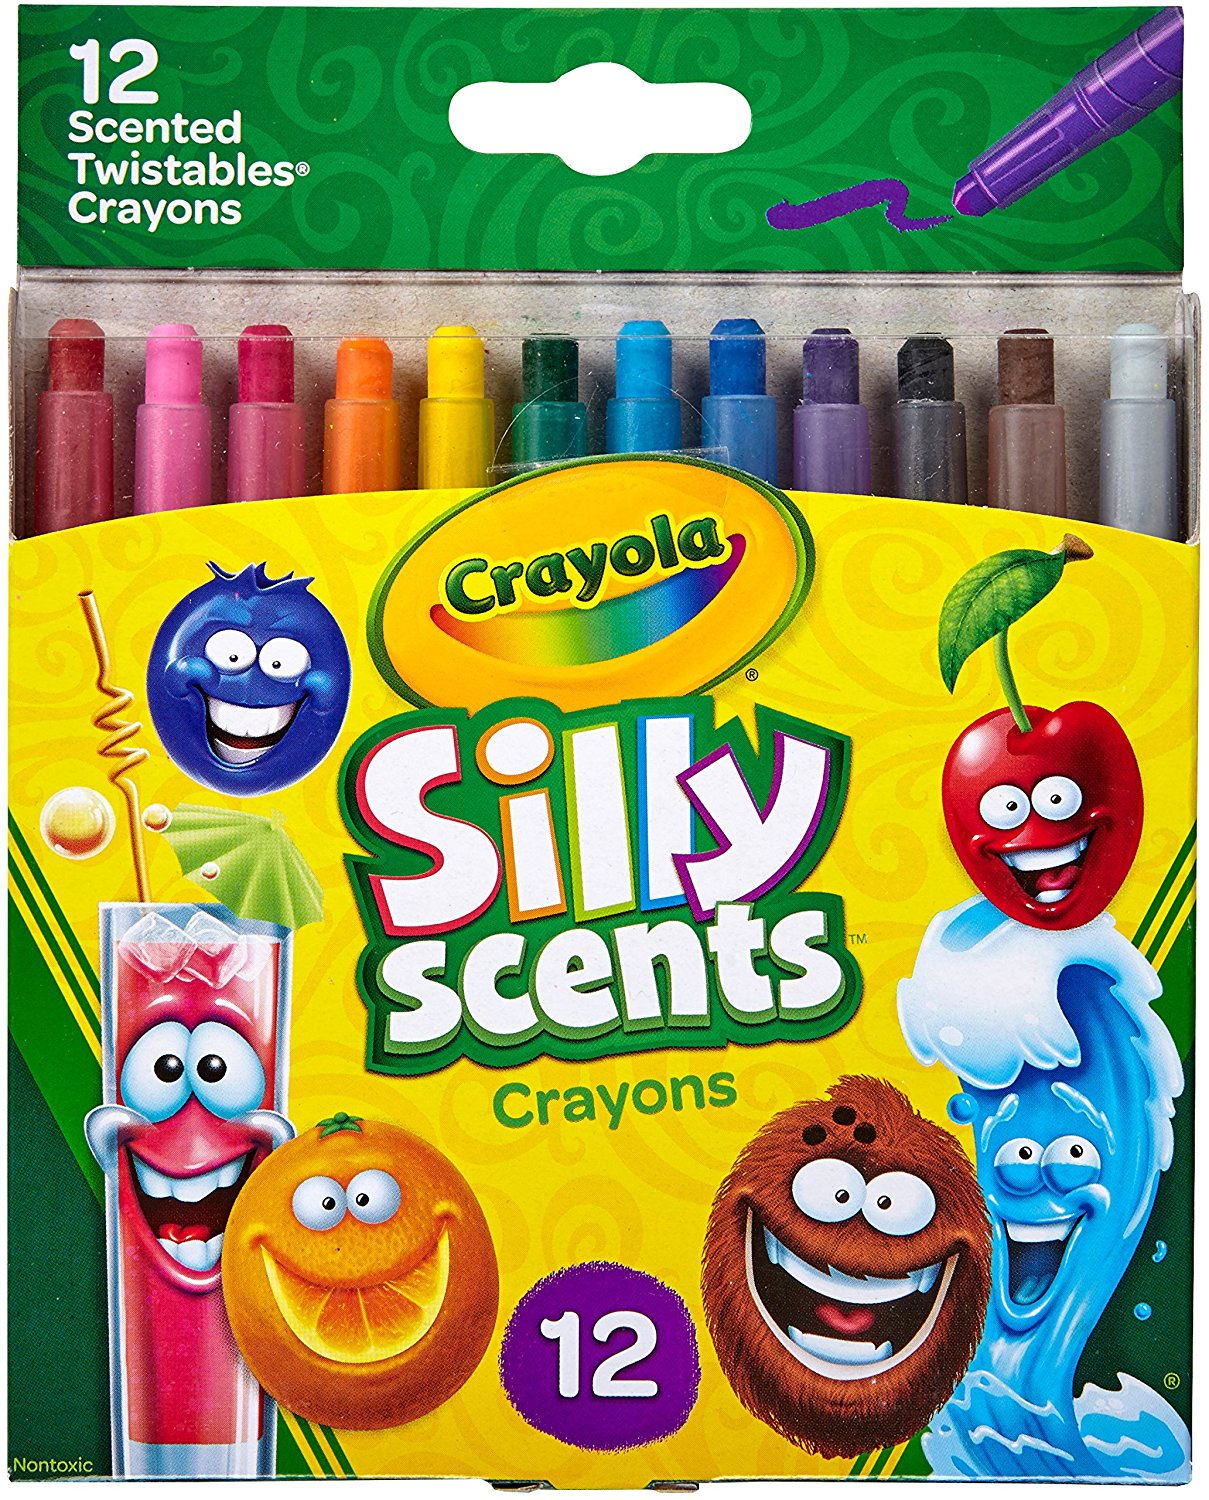 Crayola Silly Scents Twistables Crayons 12-Pack Only $3.04!